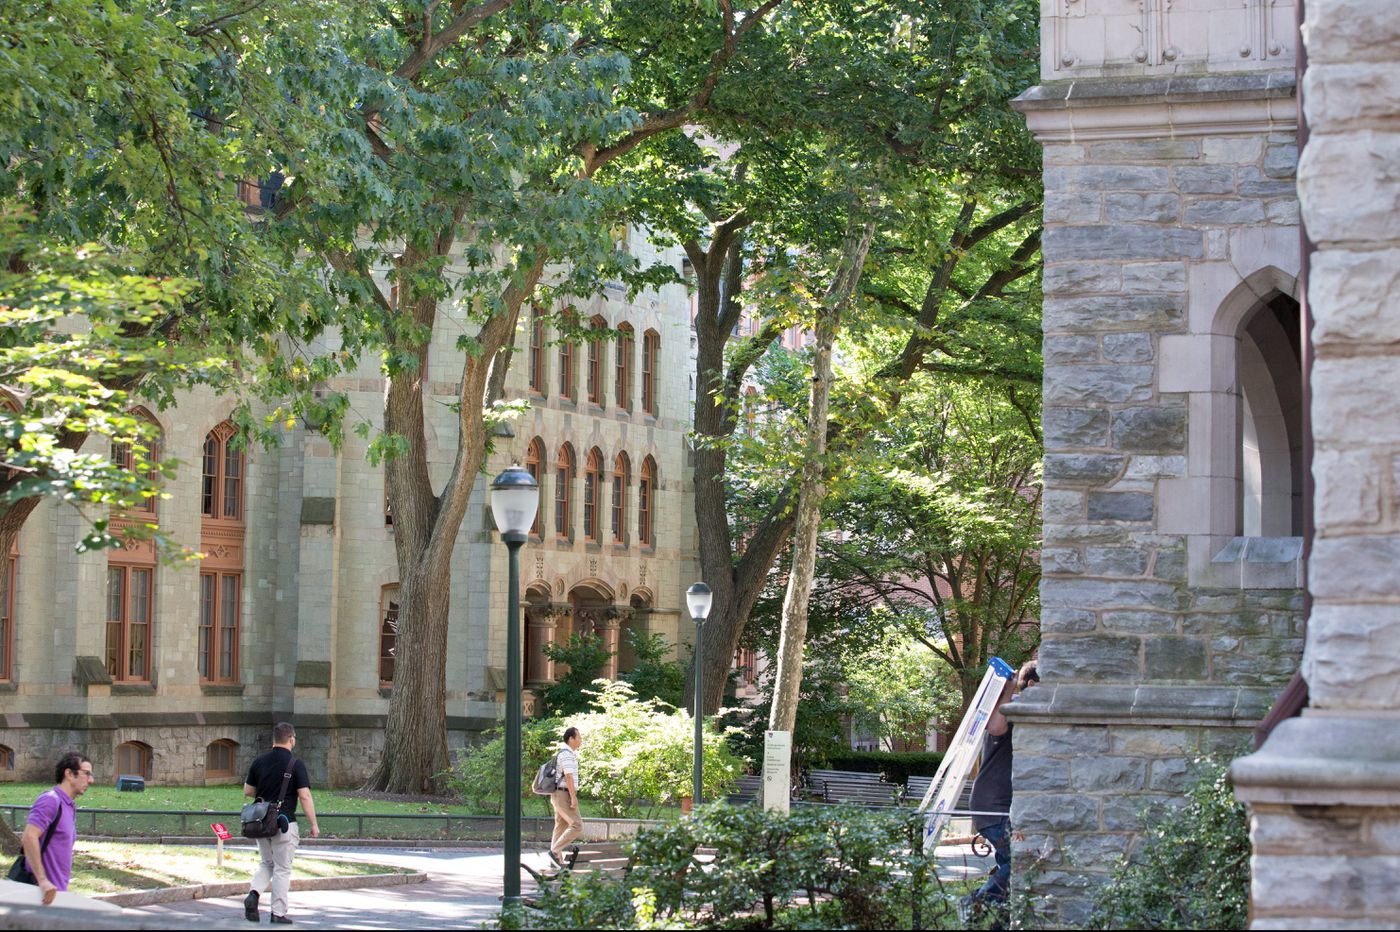 University of Pennsylvania to offer fully-online master's program in computer science